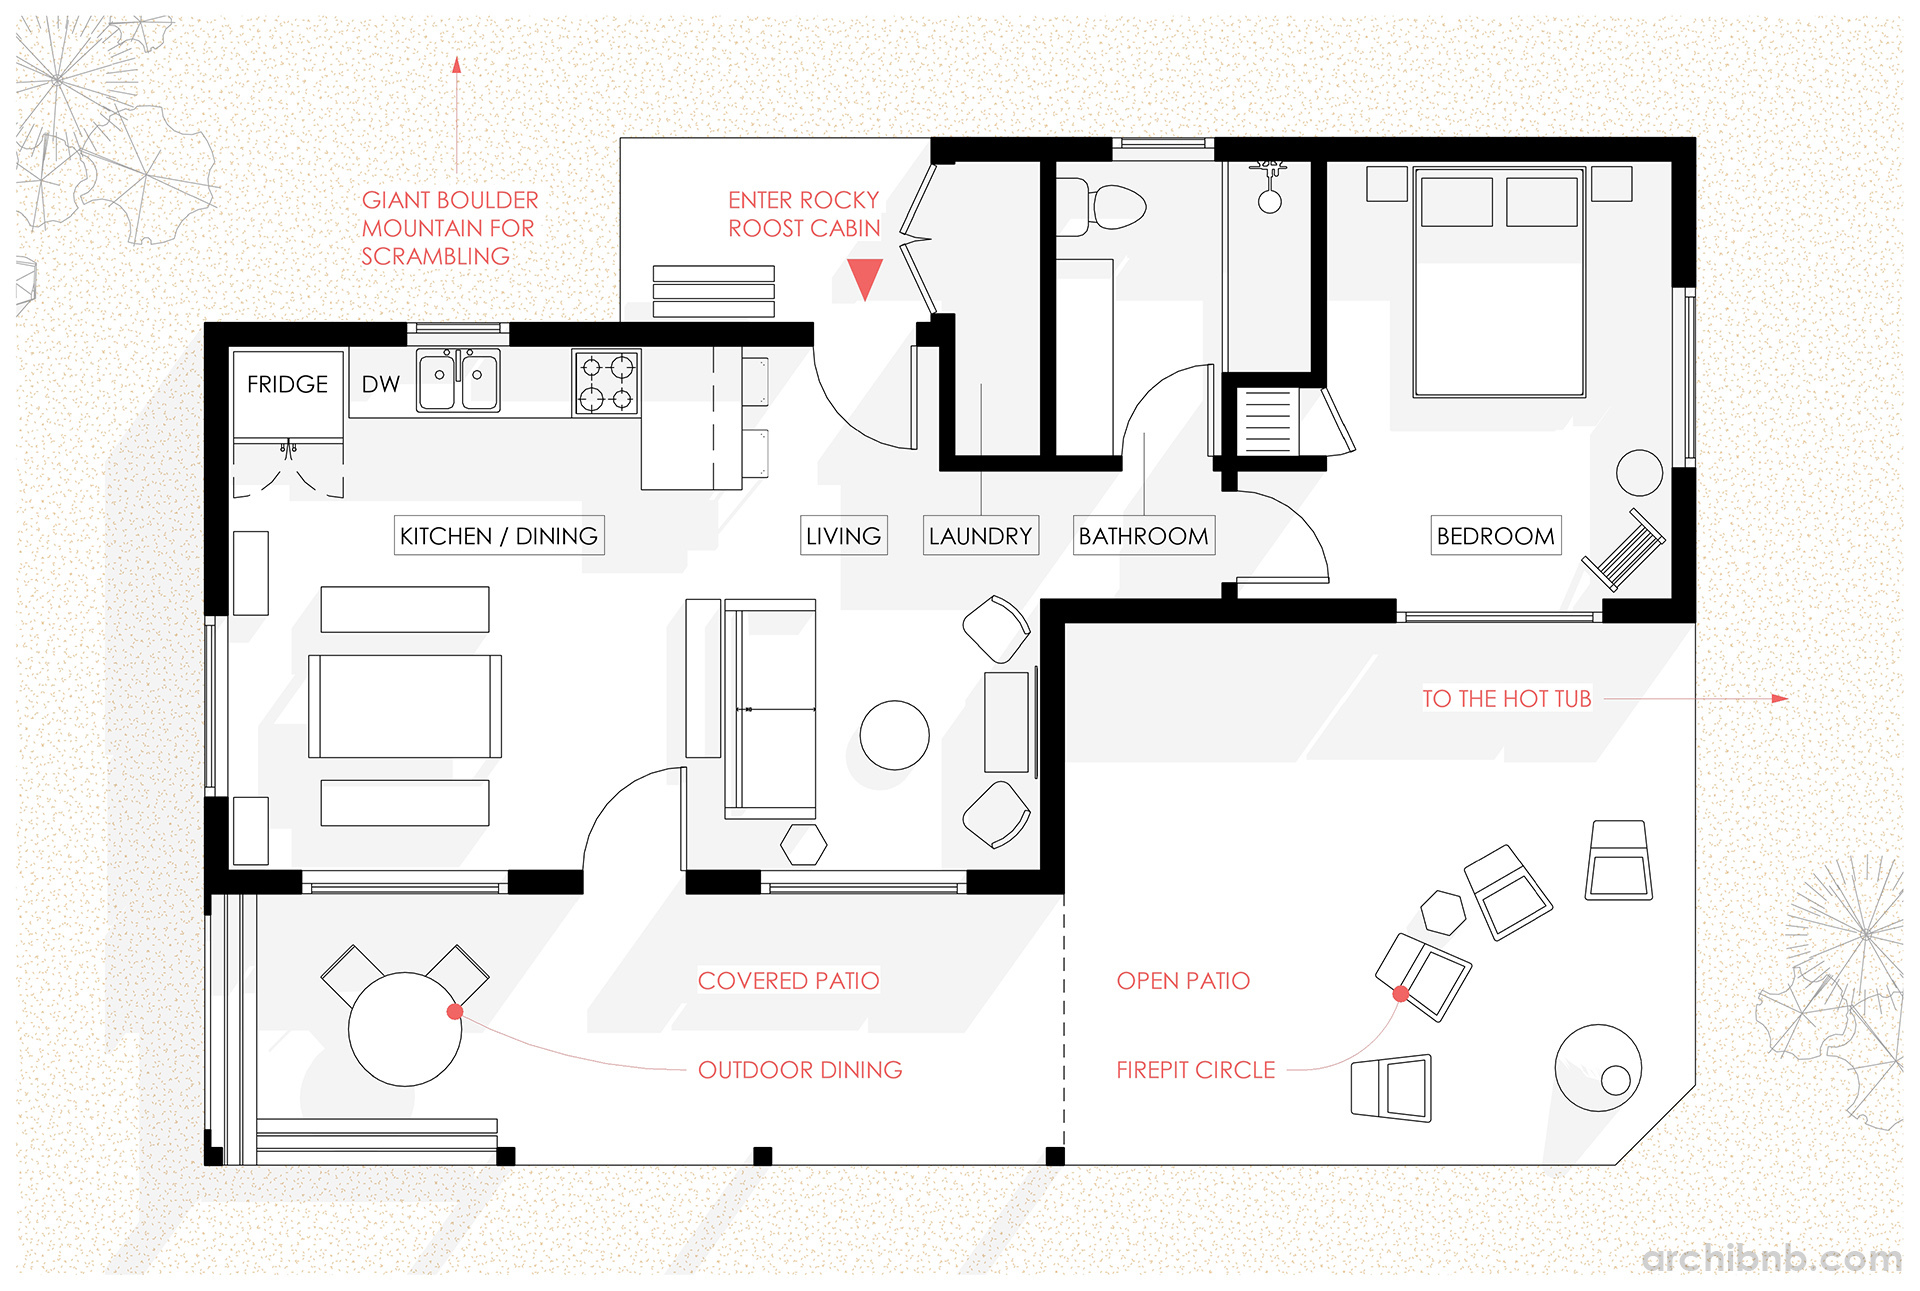 Architectural Site Plan Drawing | Free download best